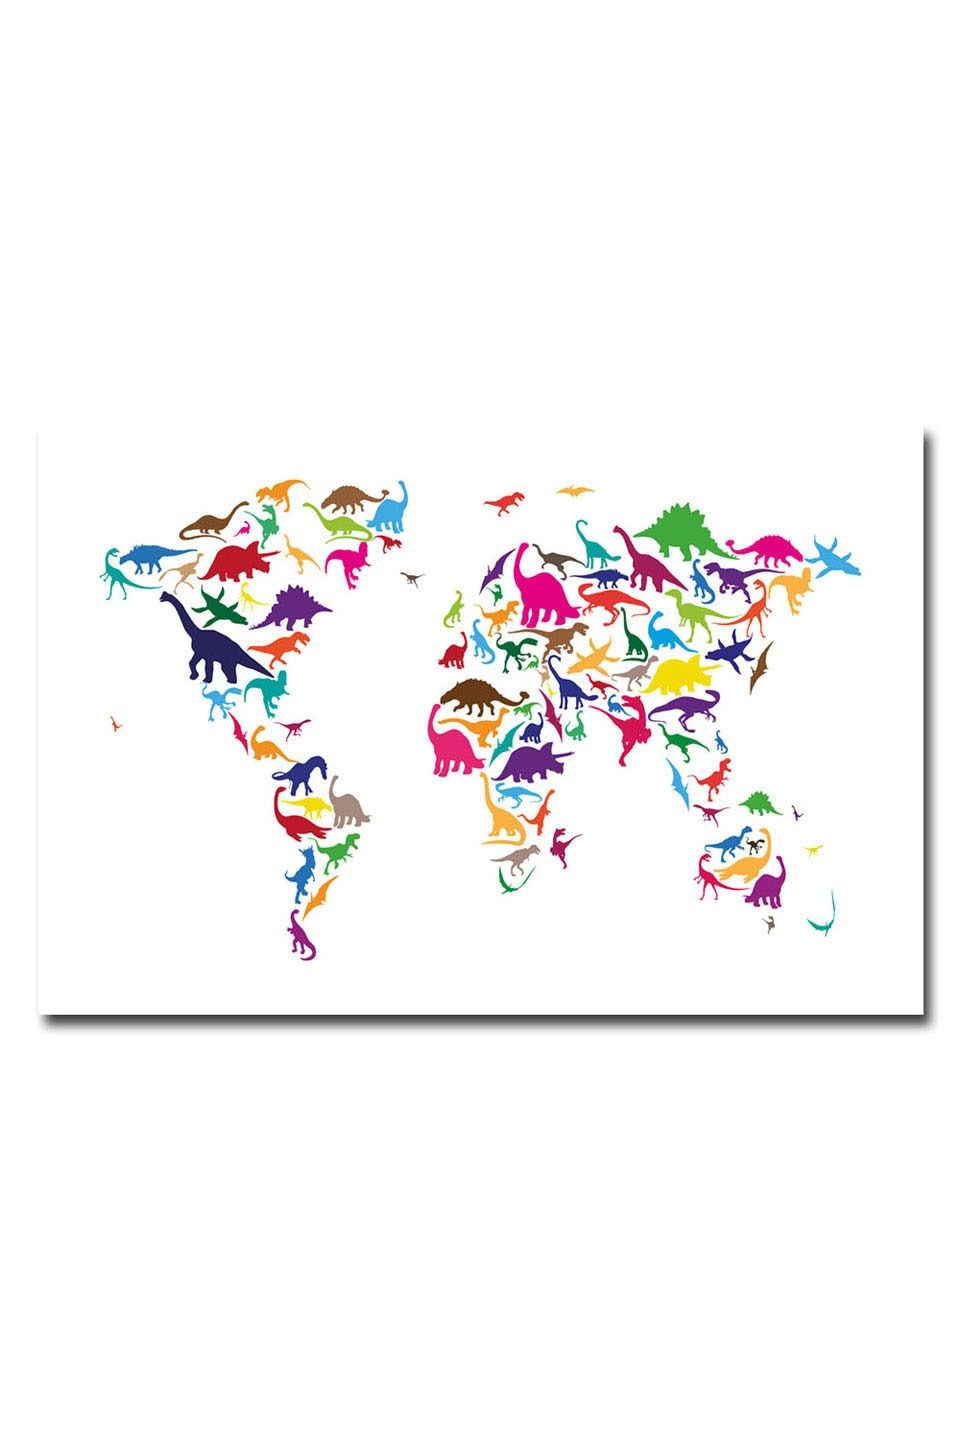 Michael tompsett dinosaur world map canvas wall art beyond the dinosaur map of the world map digital art by michael tompsett dinosaur map of the world map fine art prints and posters for sale gumiabroncs Images